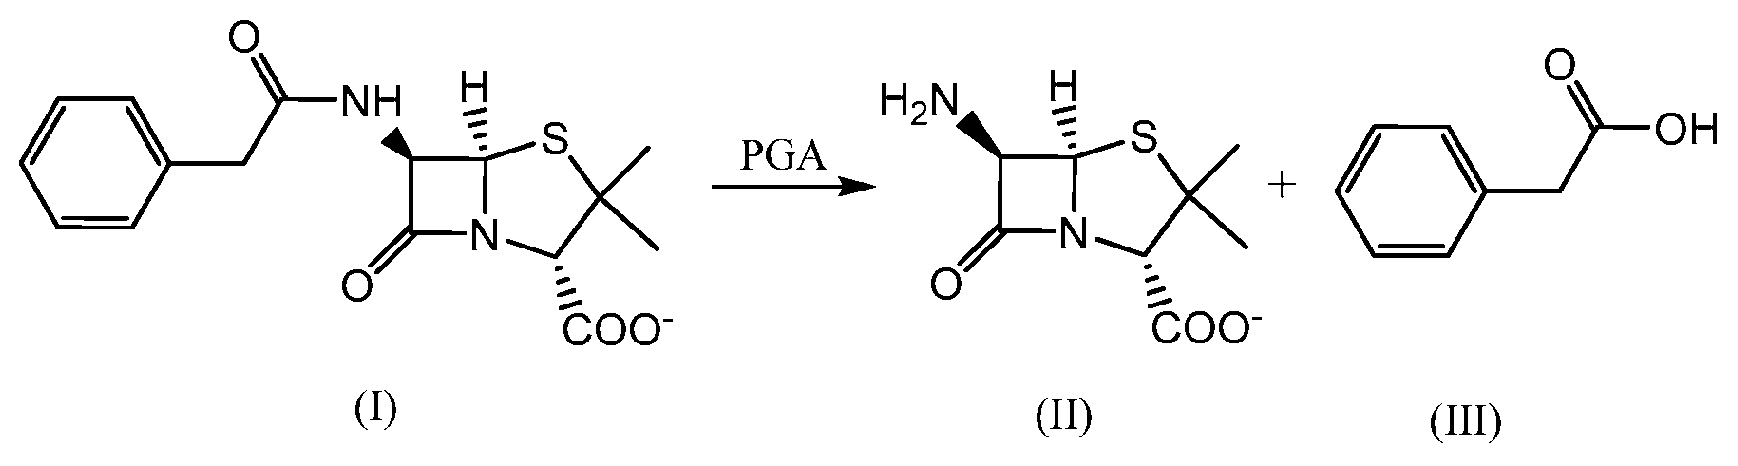 what comprises a penicillin structure Quantitative structure-activity relationship (qsar) modeling pertains to the construction of  example, the discovery of penicillin by alexander fleming in 1928 triggered the  model typically comprises of two main steps: (i) description of molecular structure and (ii) multivariate analysis for correlating.